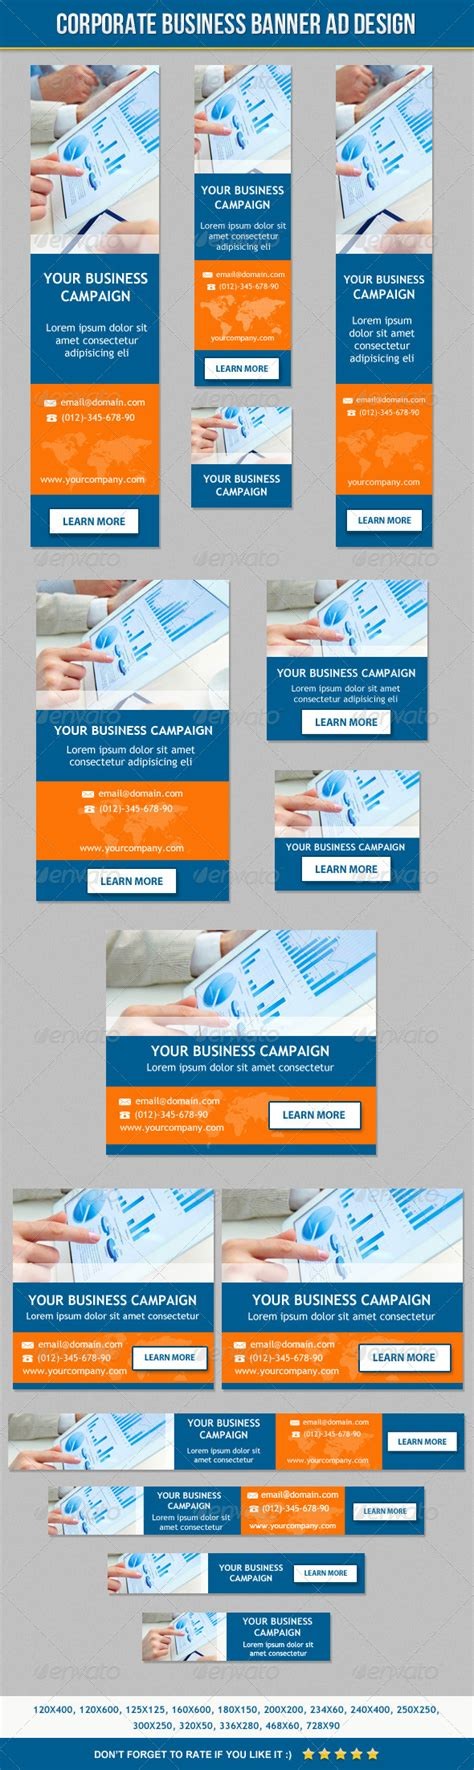 banner design envato corporate business banner ad design by themeboo graphicriver